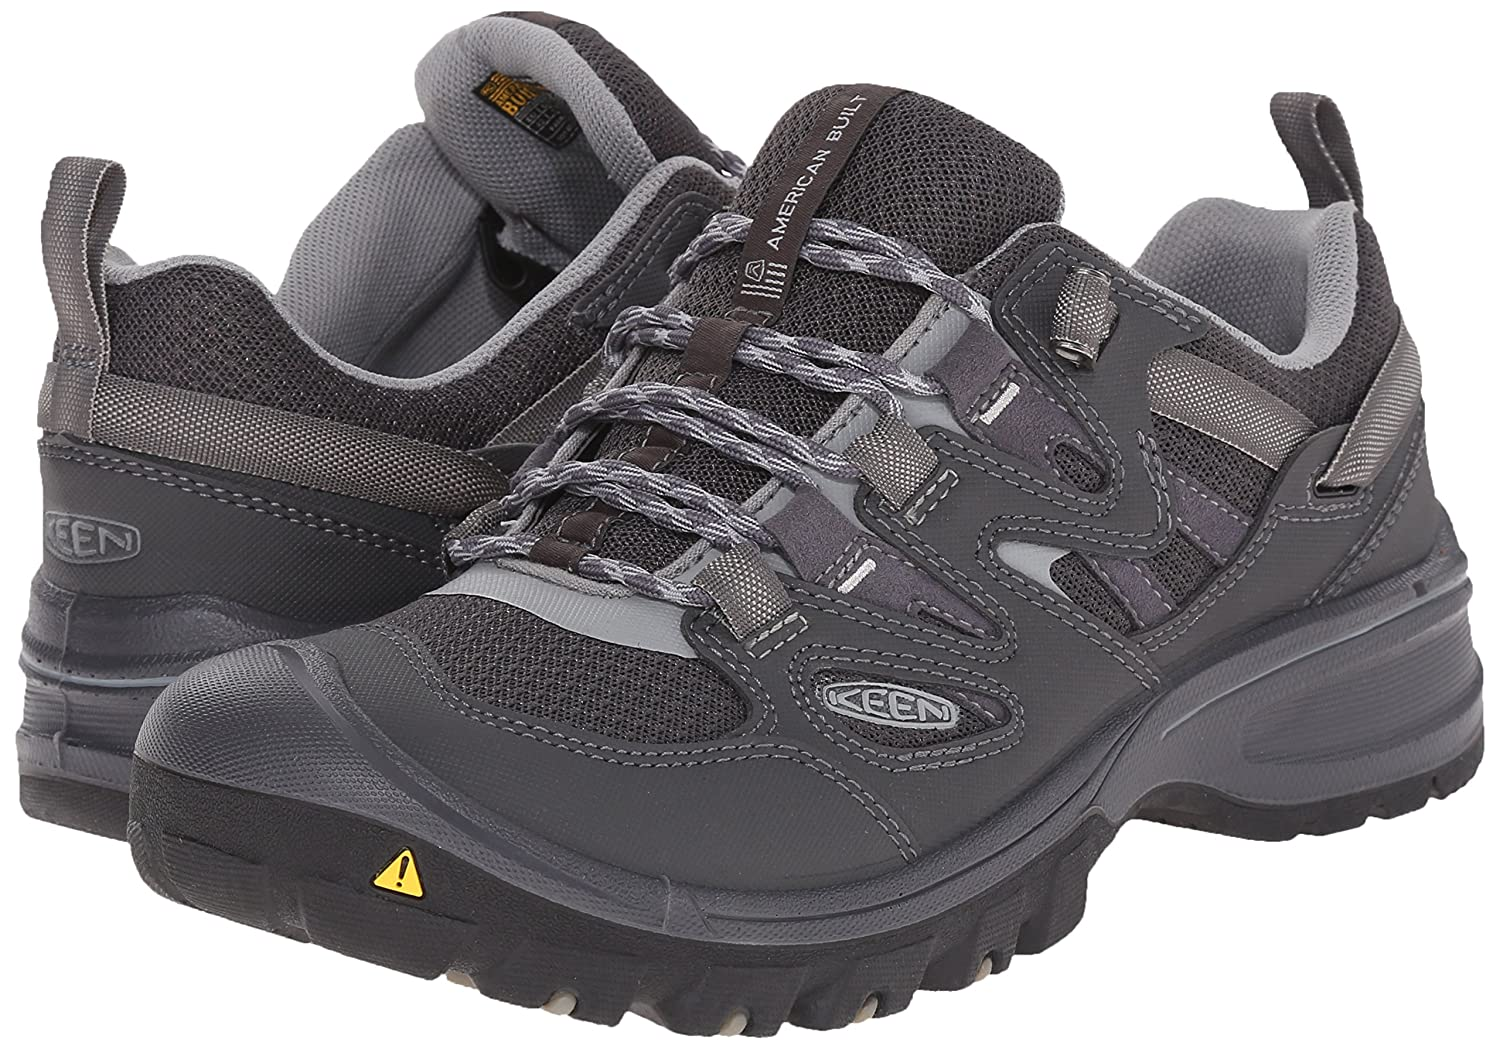 Keen Men's Sandstone Trail Shoe, Magnet/Neutral Gray, US 17 M: Buy Online  at Low Prices in India - Amazon.in